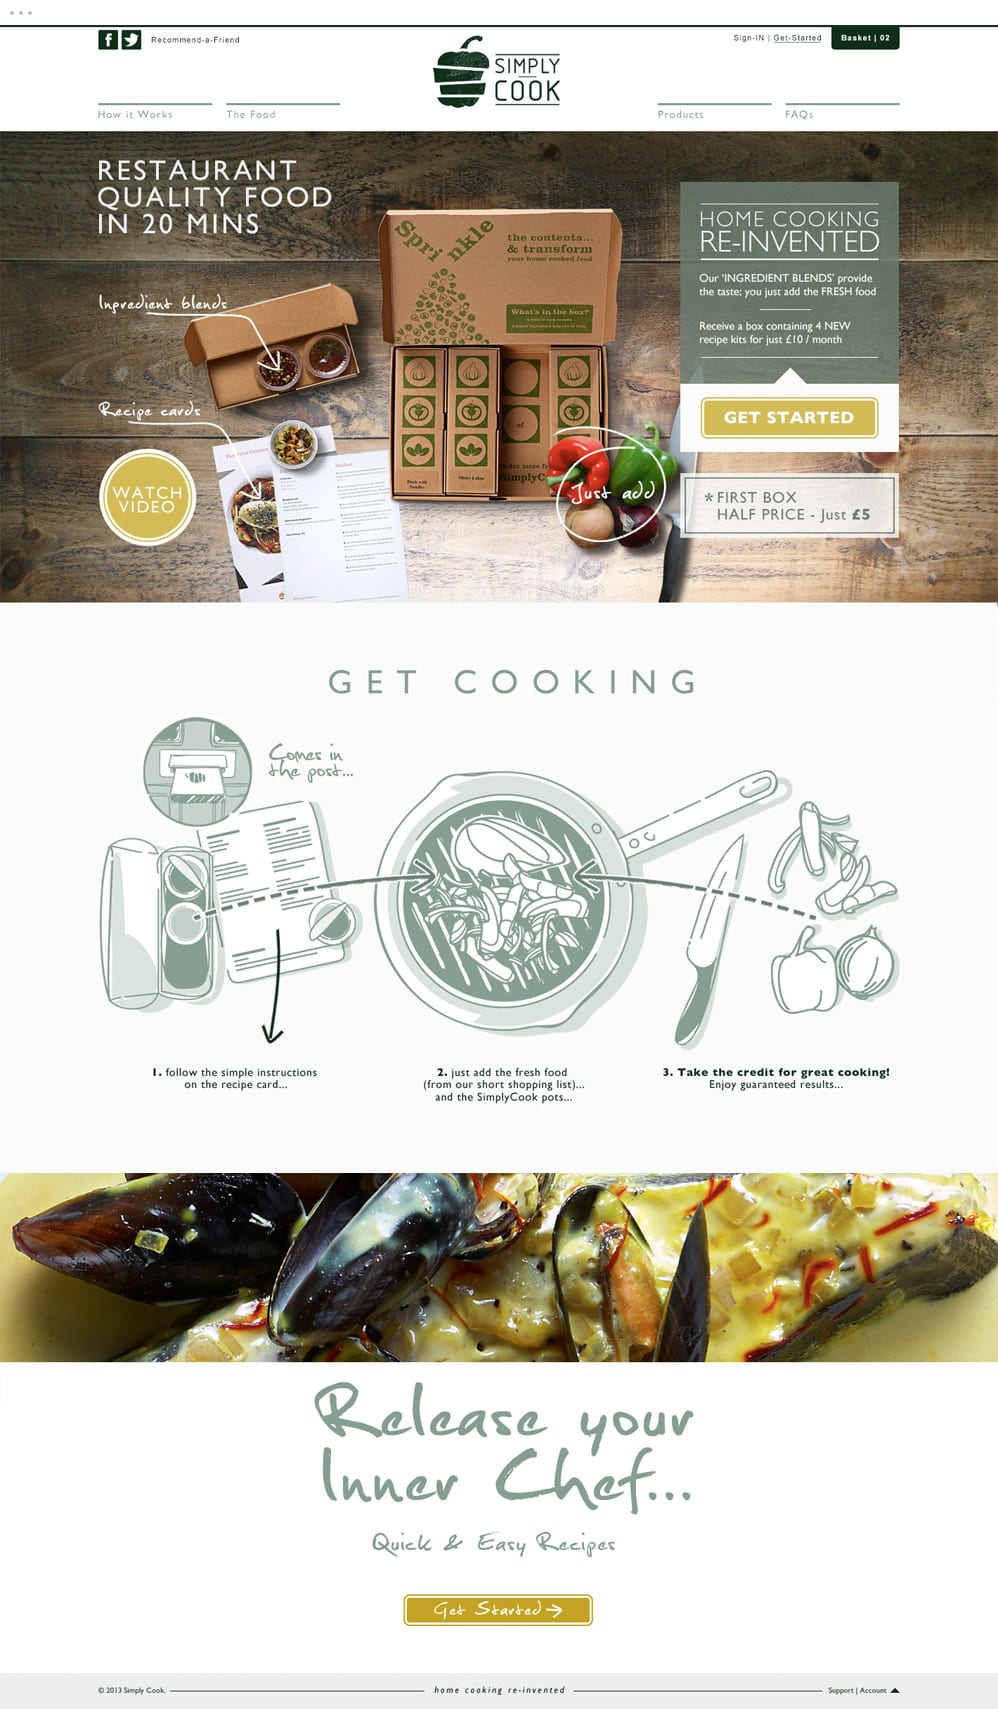 Mike-Garland-Simply-Cook-Website-Home